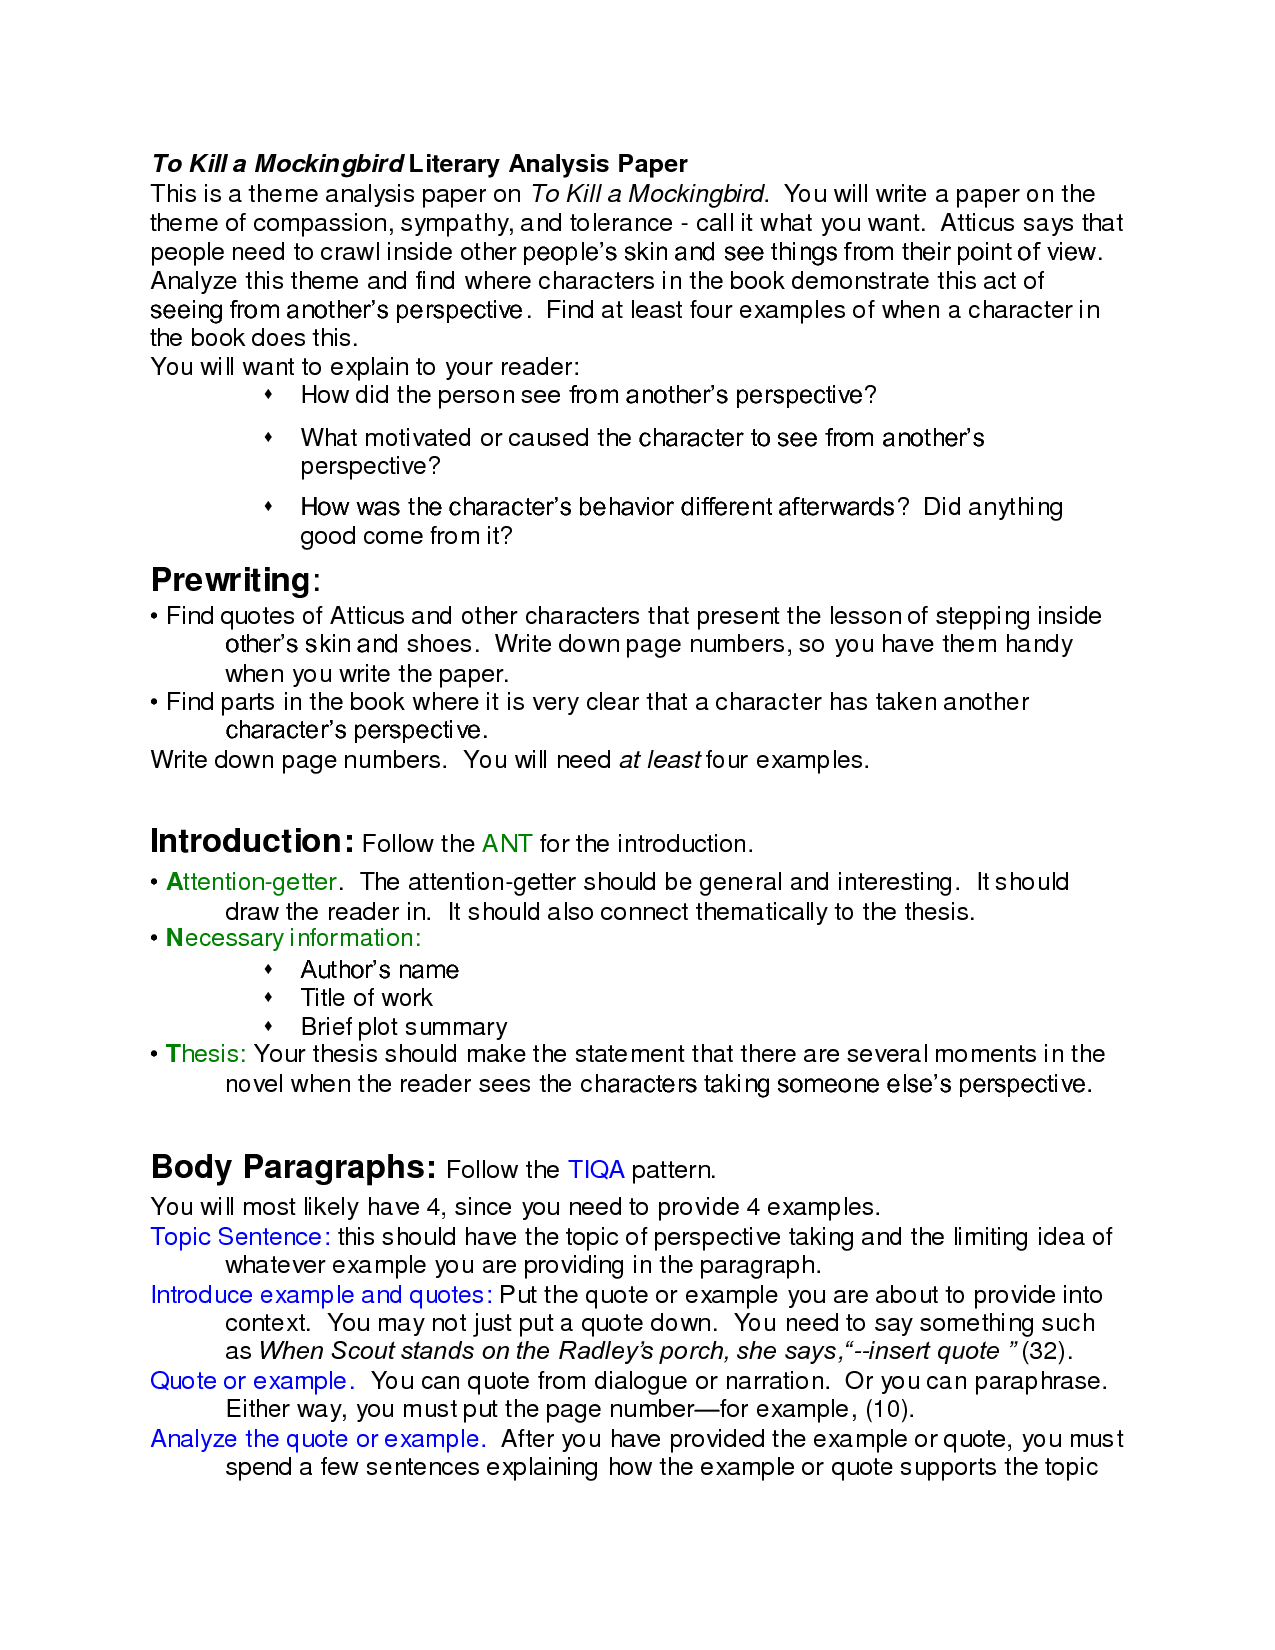 to kill a mockingbird essay compassion term paper help to kill a mockingbird essay compassion